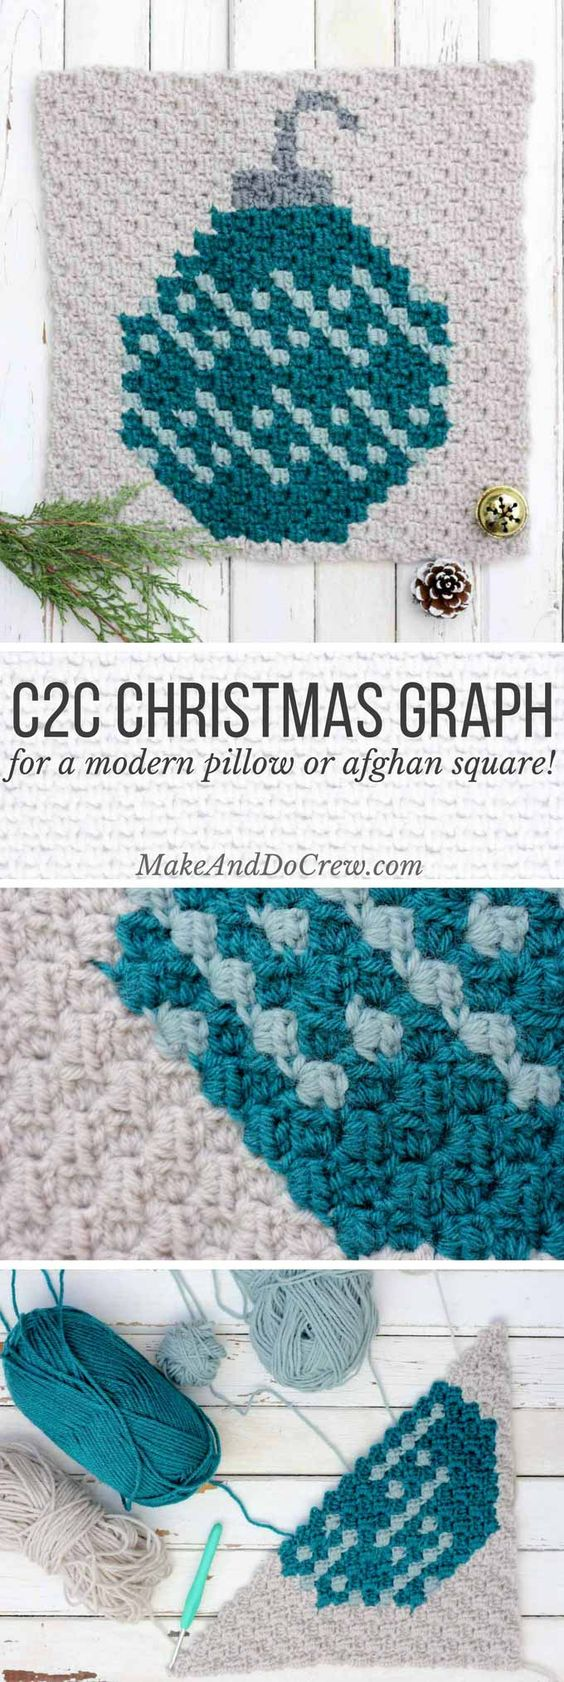 This C2C crochet Christmas pattern is the second in my free afghan series. This monochromatic bulb ornament would work great as a festive pillow front too! Click to download the other free graphs for this festive, modern afghan!: